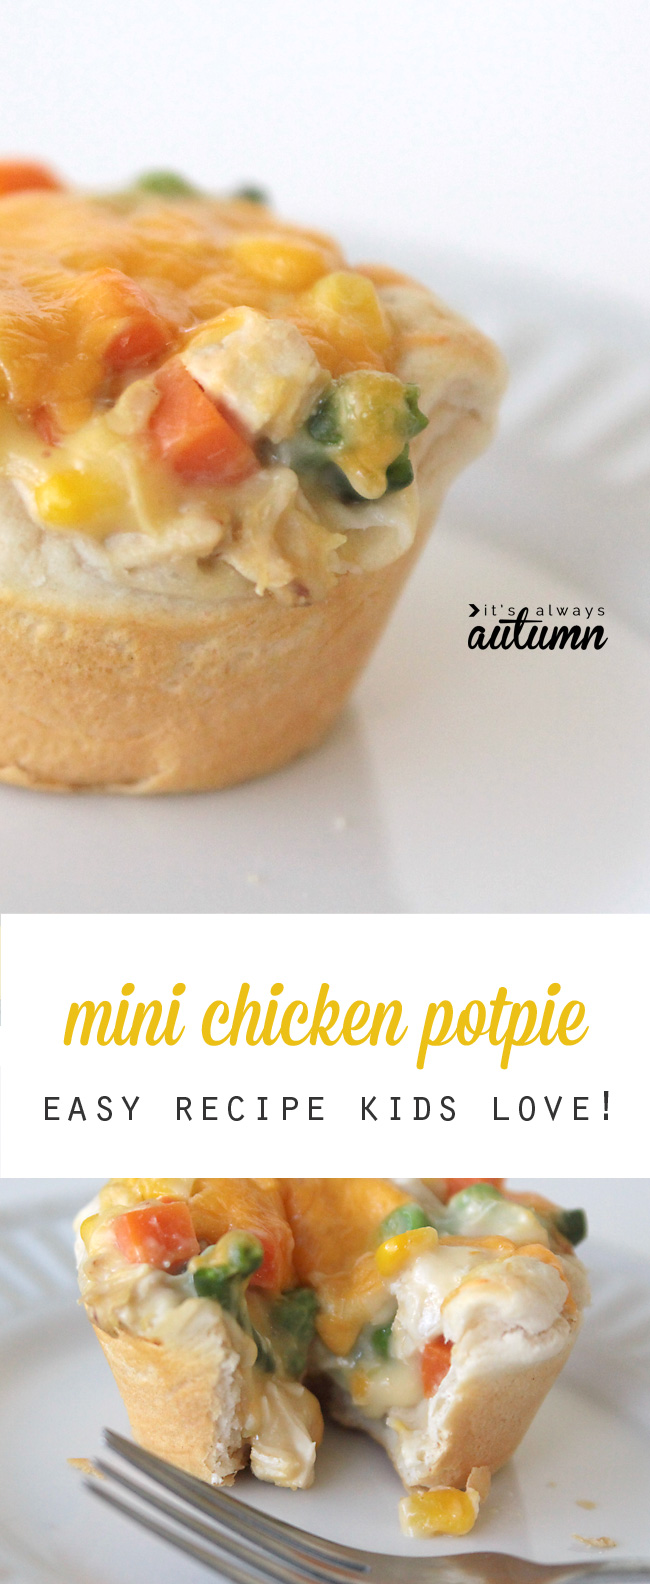 Campbell Kitchen Recipe Mini Chicken Pot Pies Other Kid Friendly Recipes From Campbells